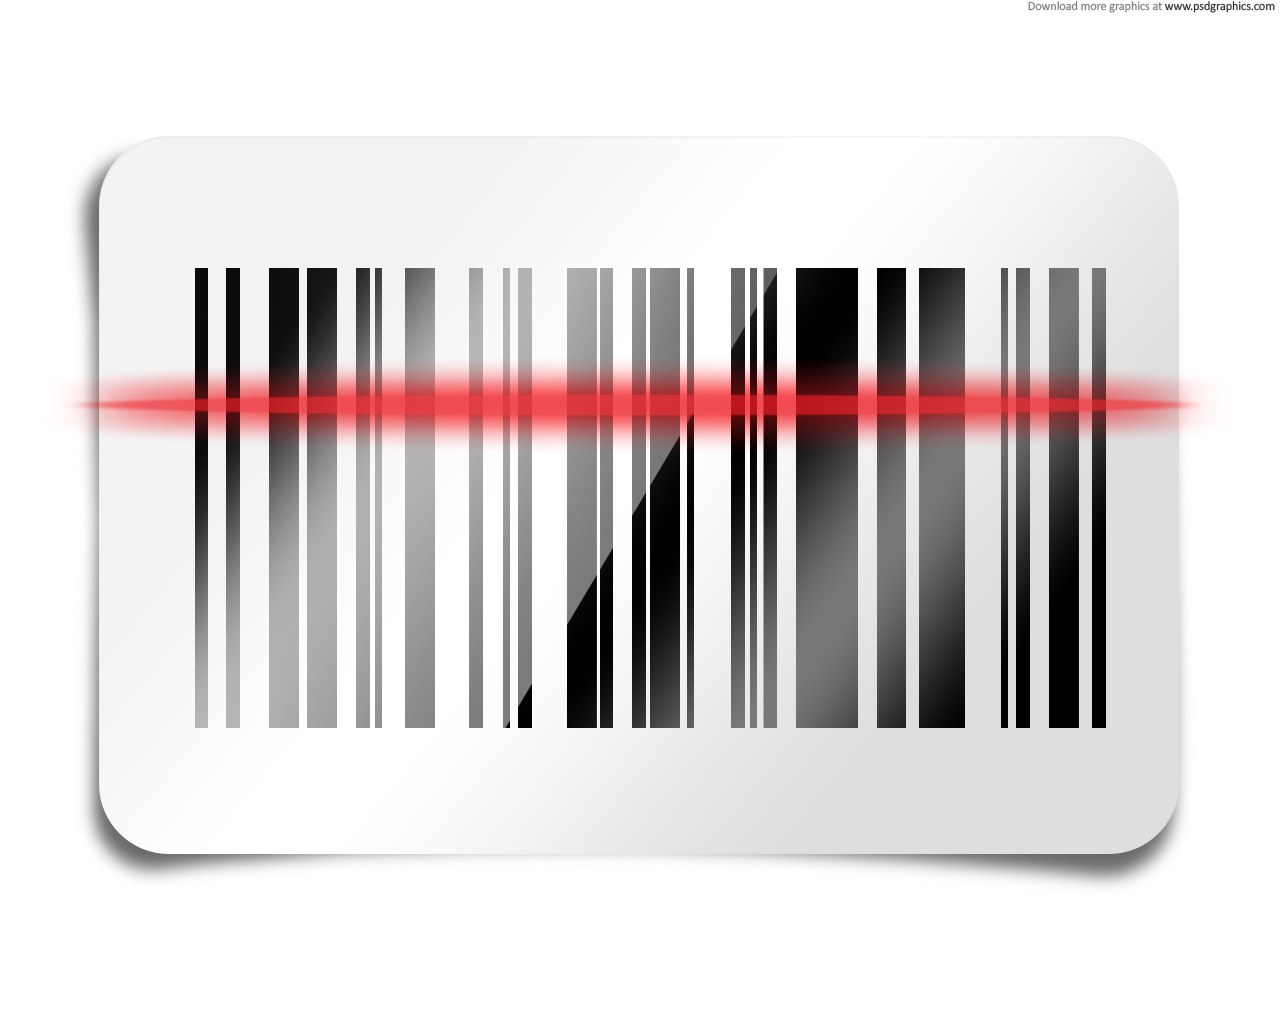 Animated Gif Barcode Scanner Clipart.